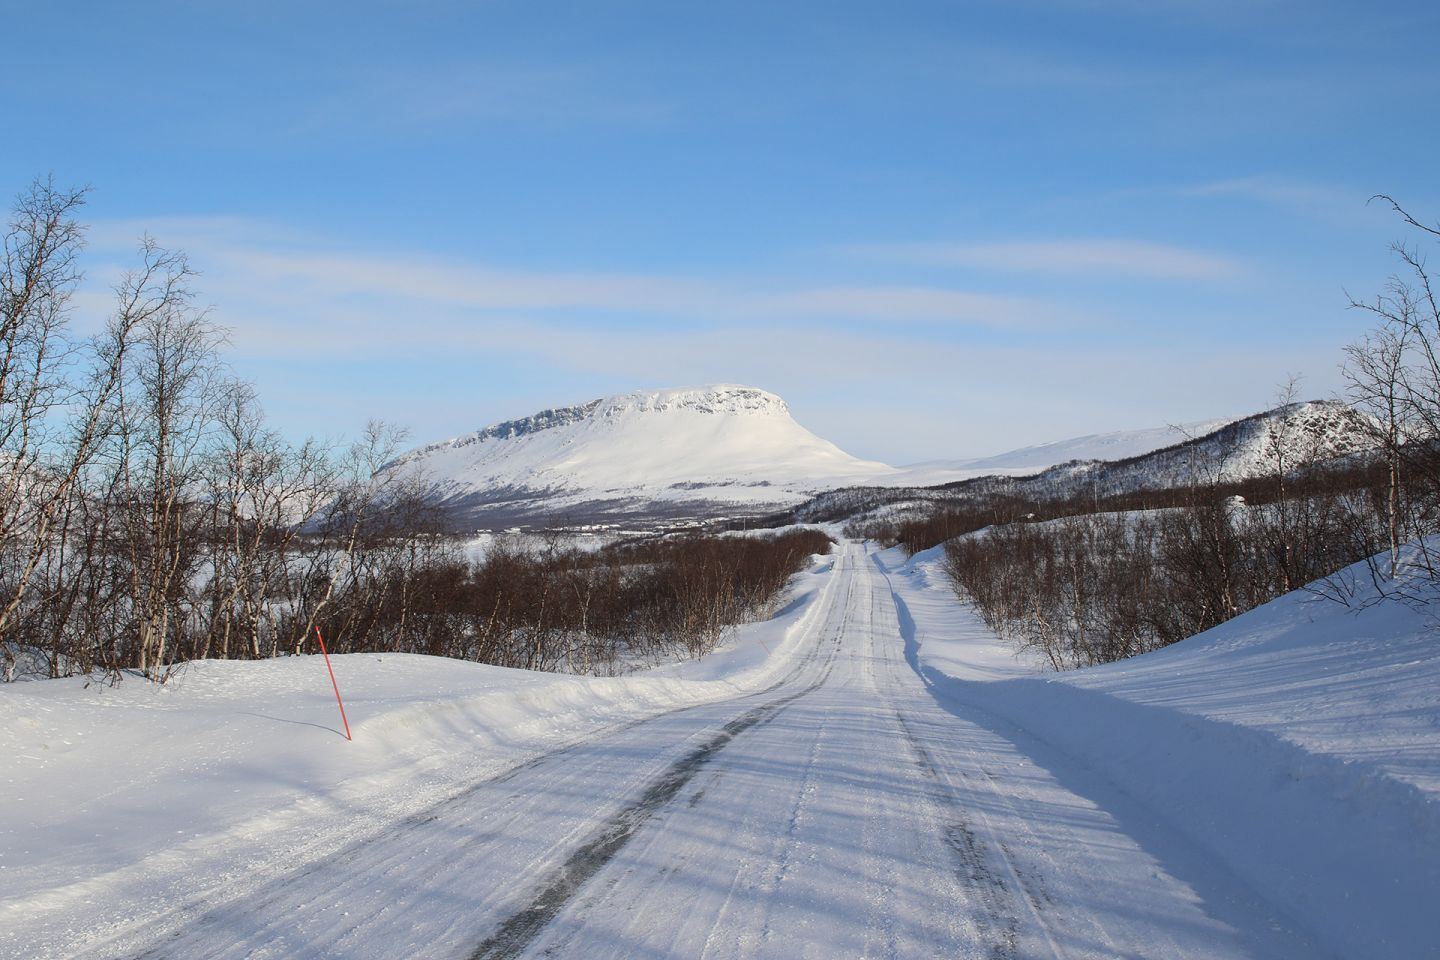 Saana arctic mountain in the end of a road in Enontekiö, Lapland